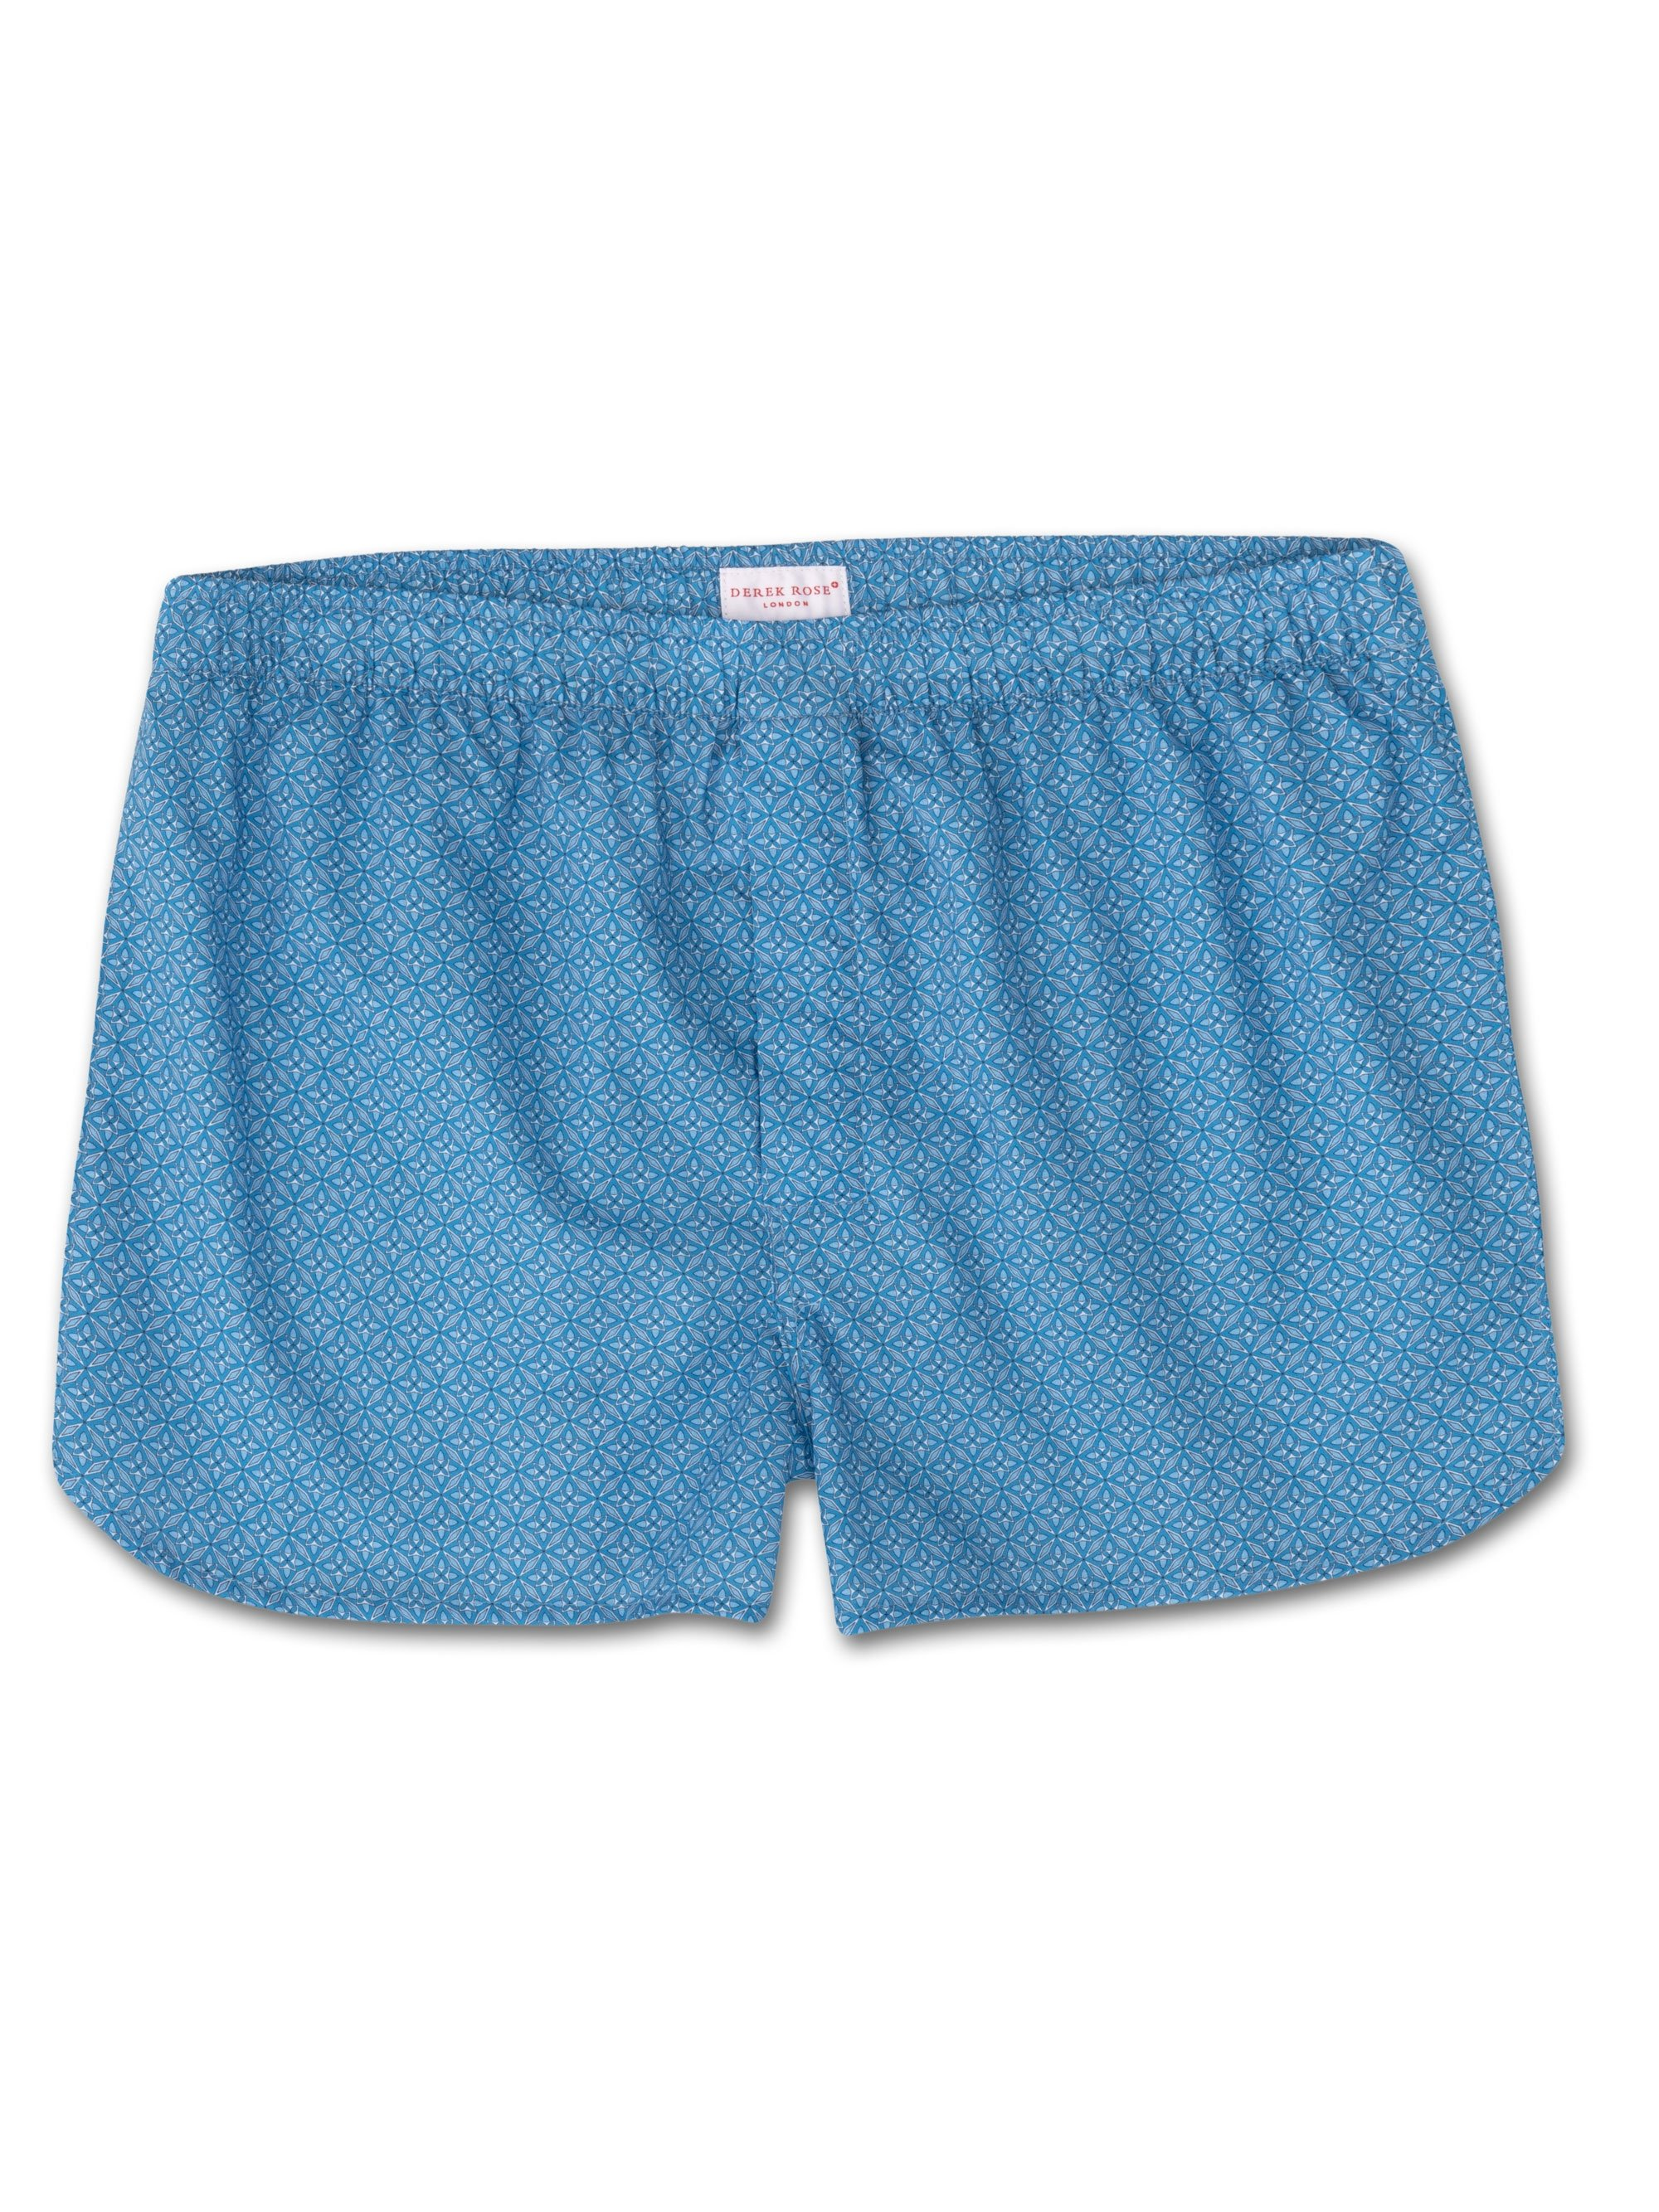 Men's Modern Fit Boxer Shorts Ledbury 21 Cotton Batiste Blue